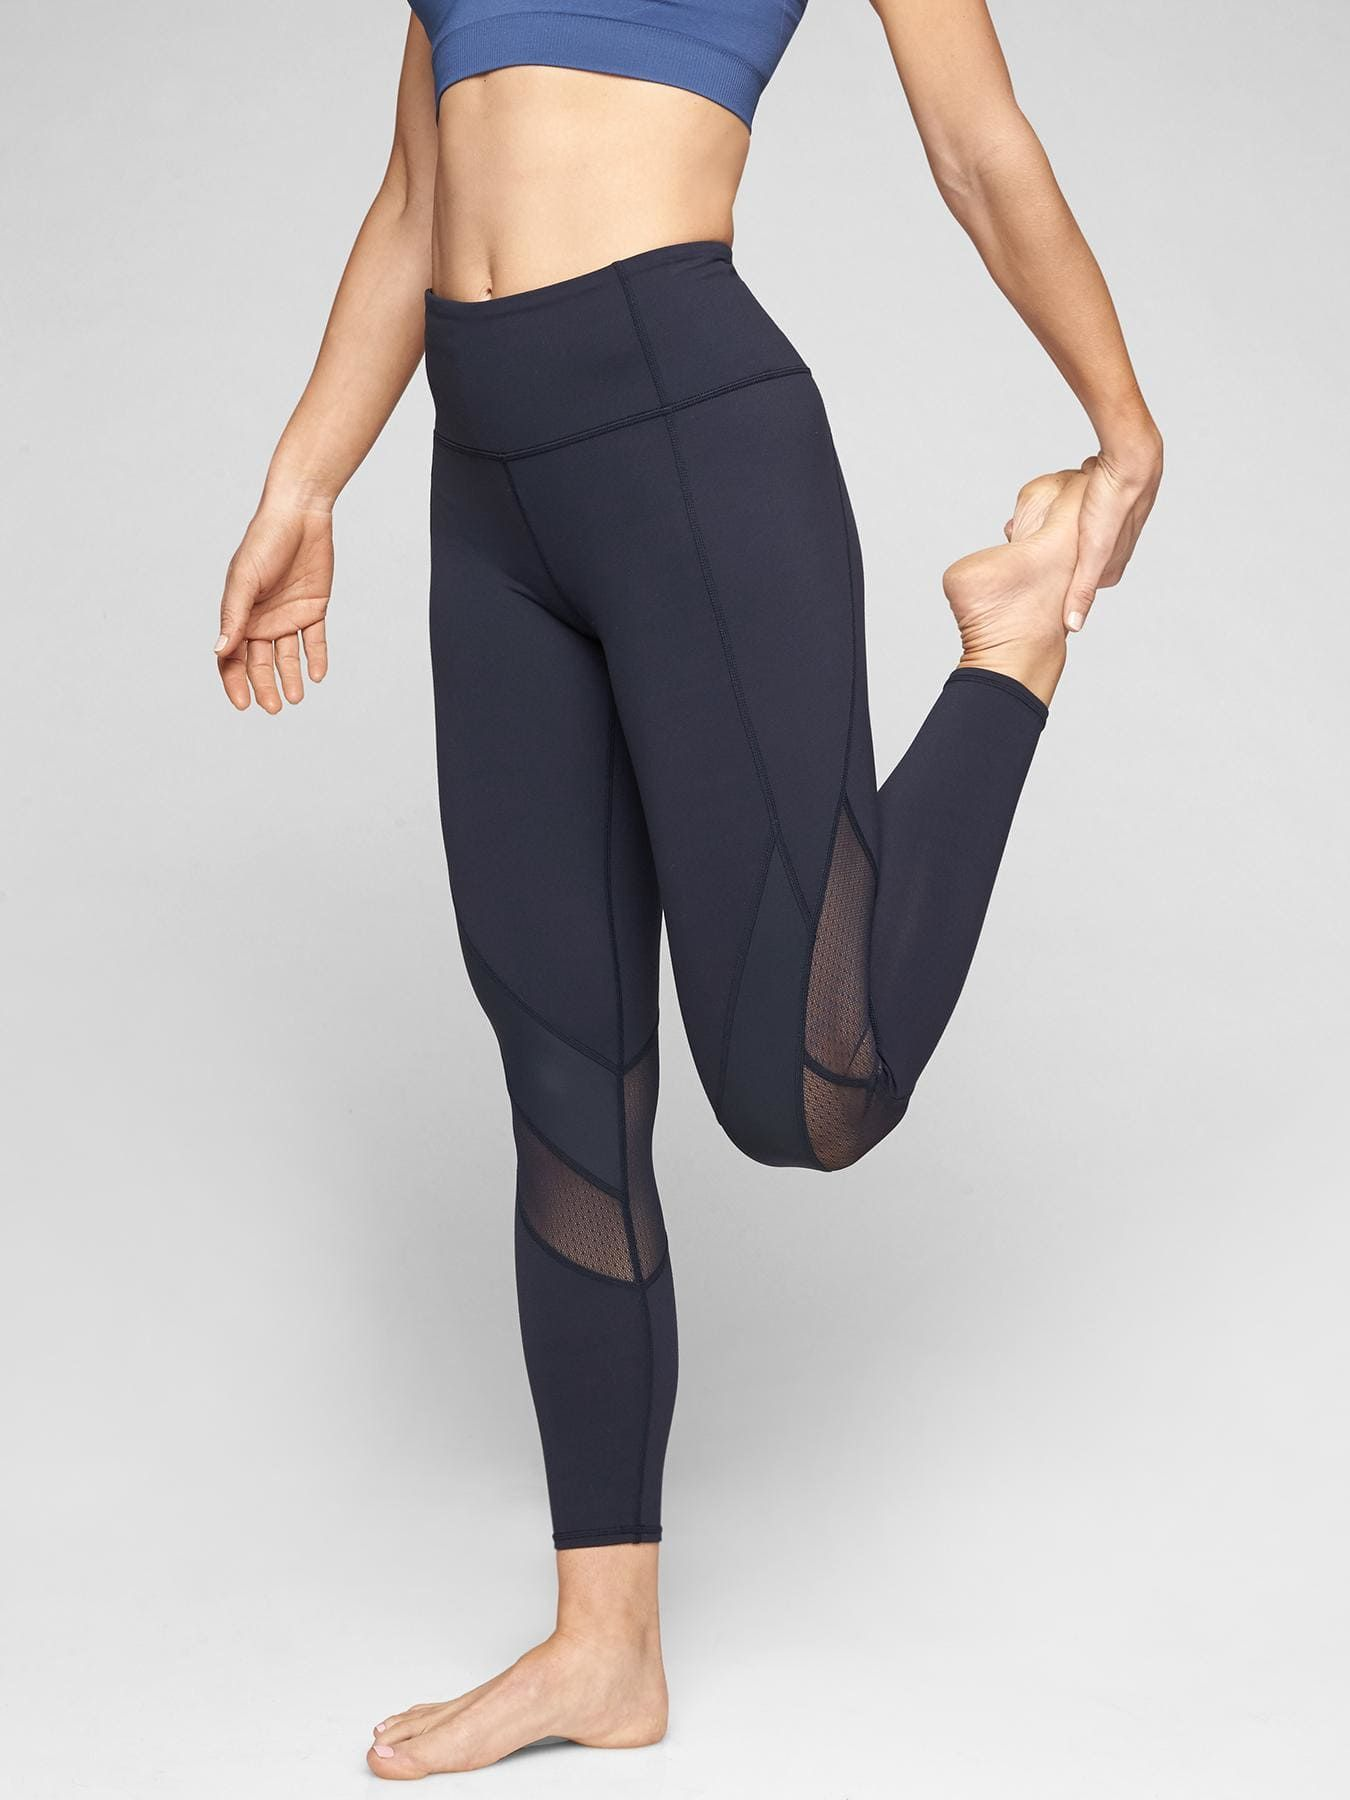 6b97ea7eeaa6d Mesh Shine Salutation 7/8 Tight | Athleta | Want | Leggings are not ...